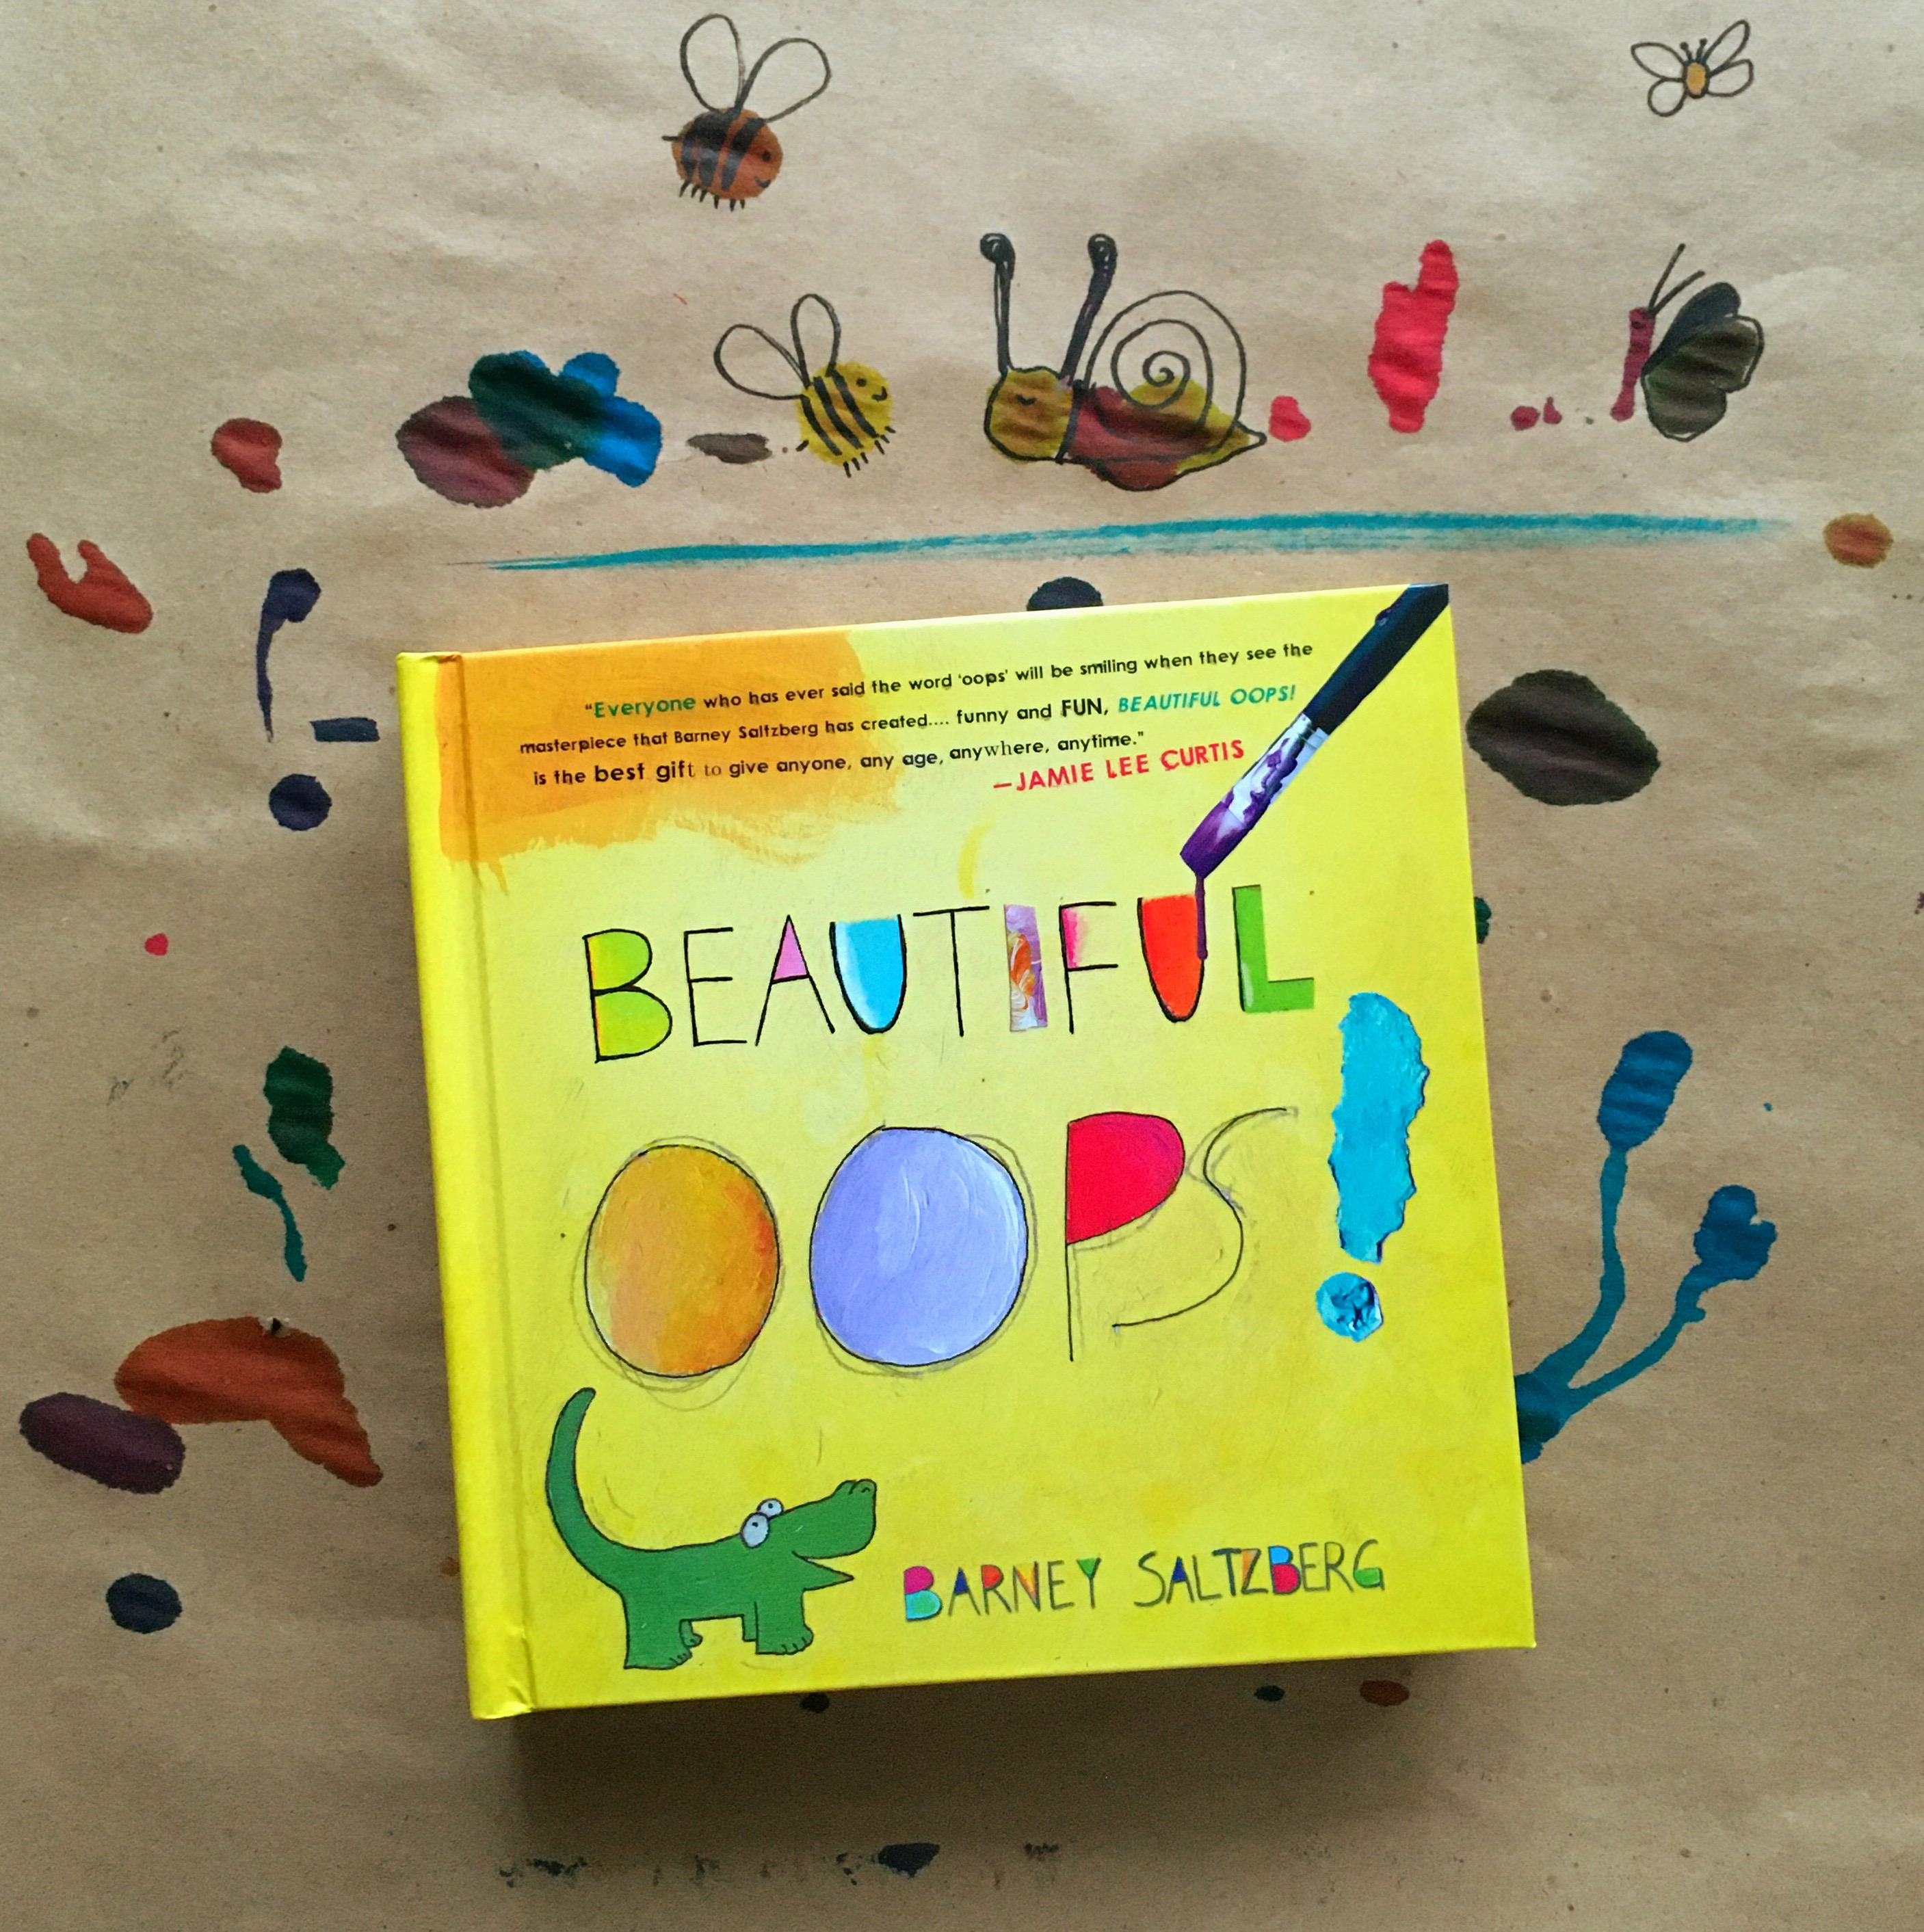 """Photo of the children's book """"Beautiful Oops!"""" by Barney Saltzberg, surrounded by doodles made from paint splatters"""